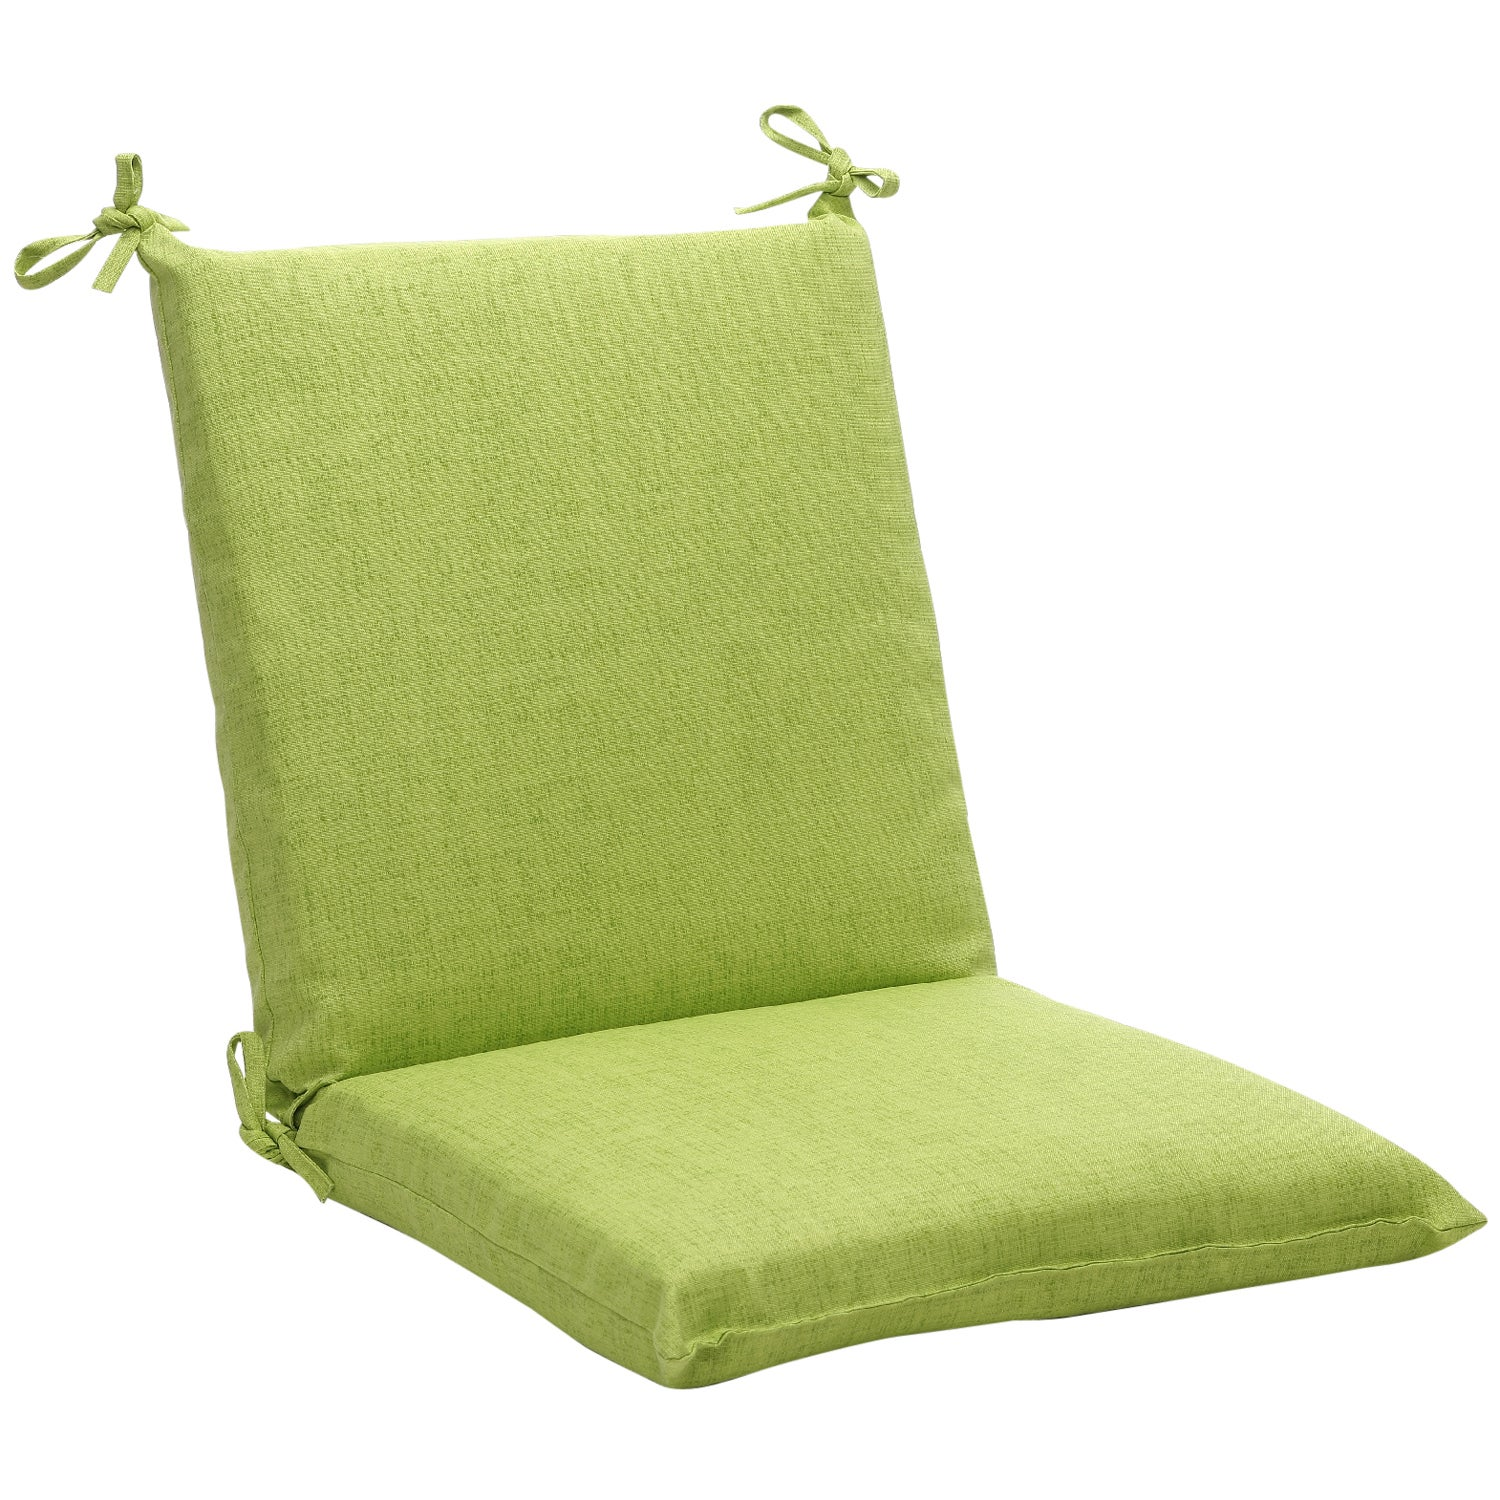 Squared solid green textured outdoor chair cushion for Chair pillow